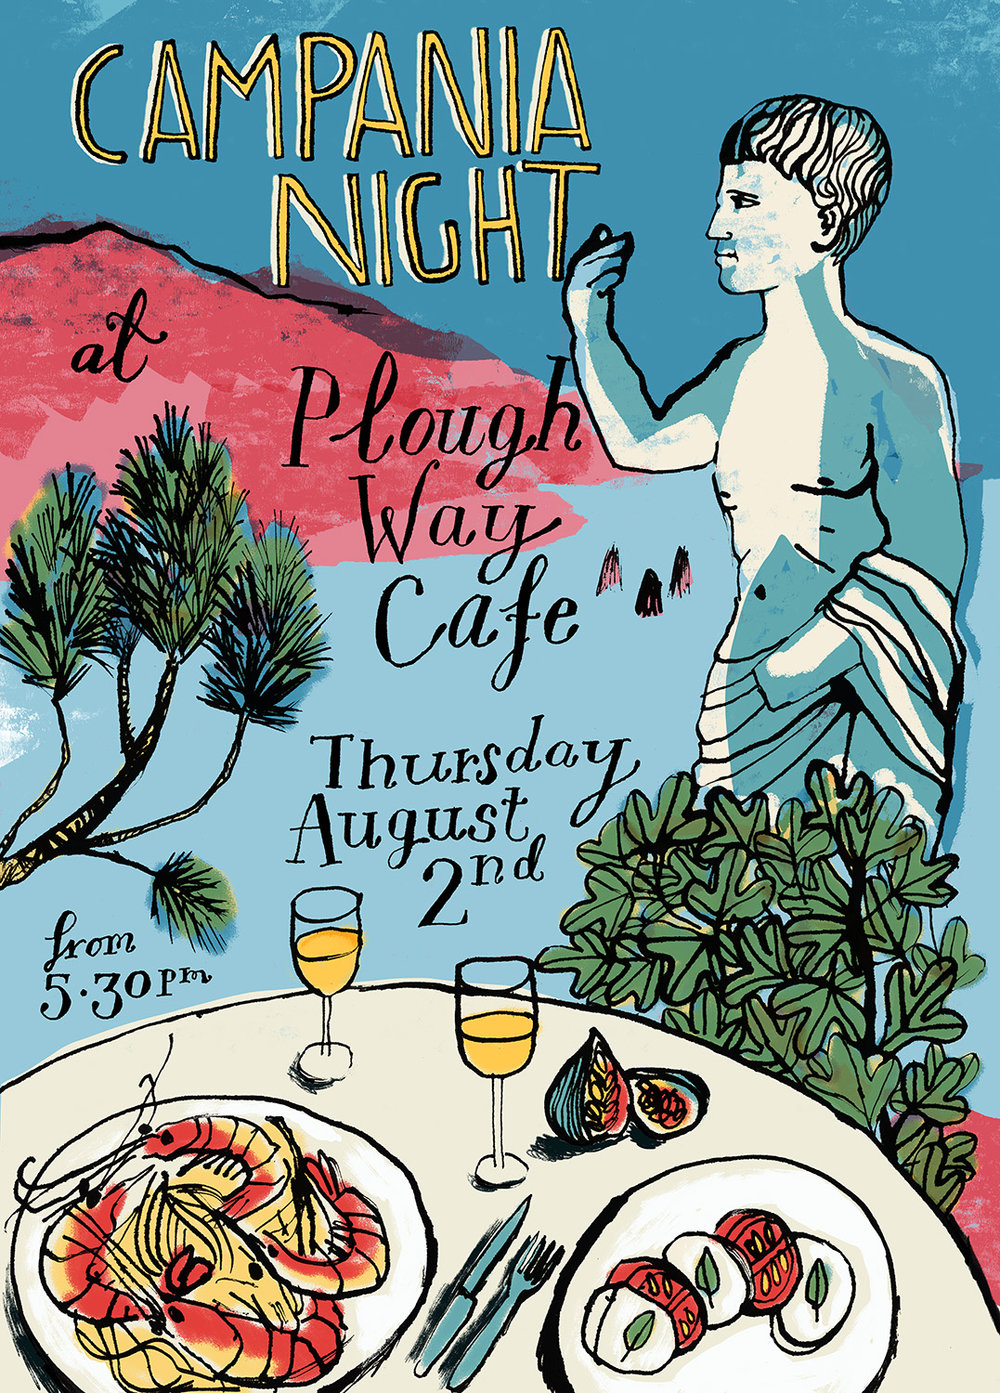 Plough Way Cafe | Campania Night